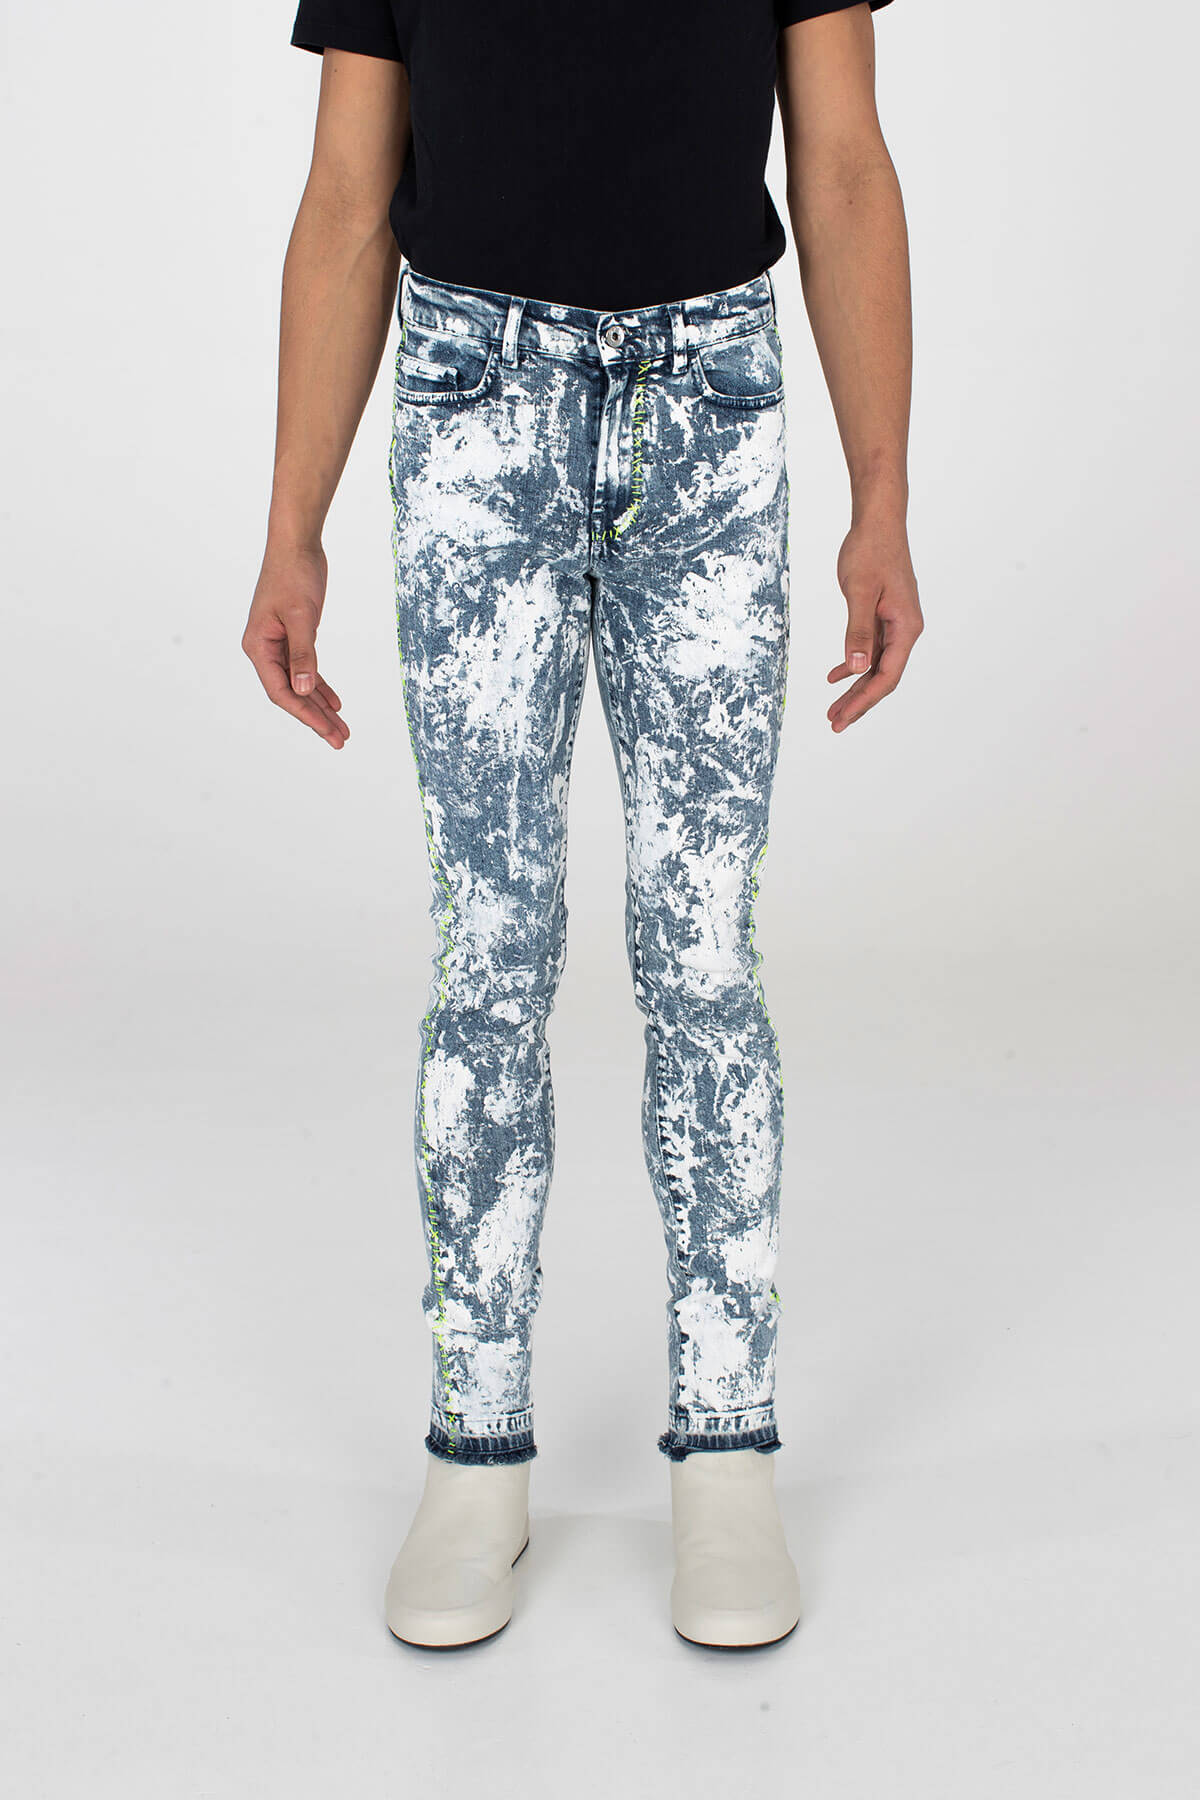 Crixus Jeans Acid Wash Punk - MJB